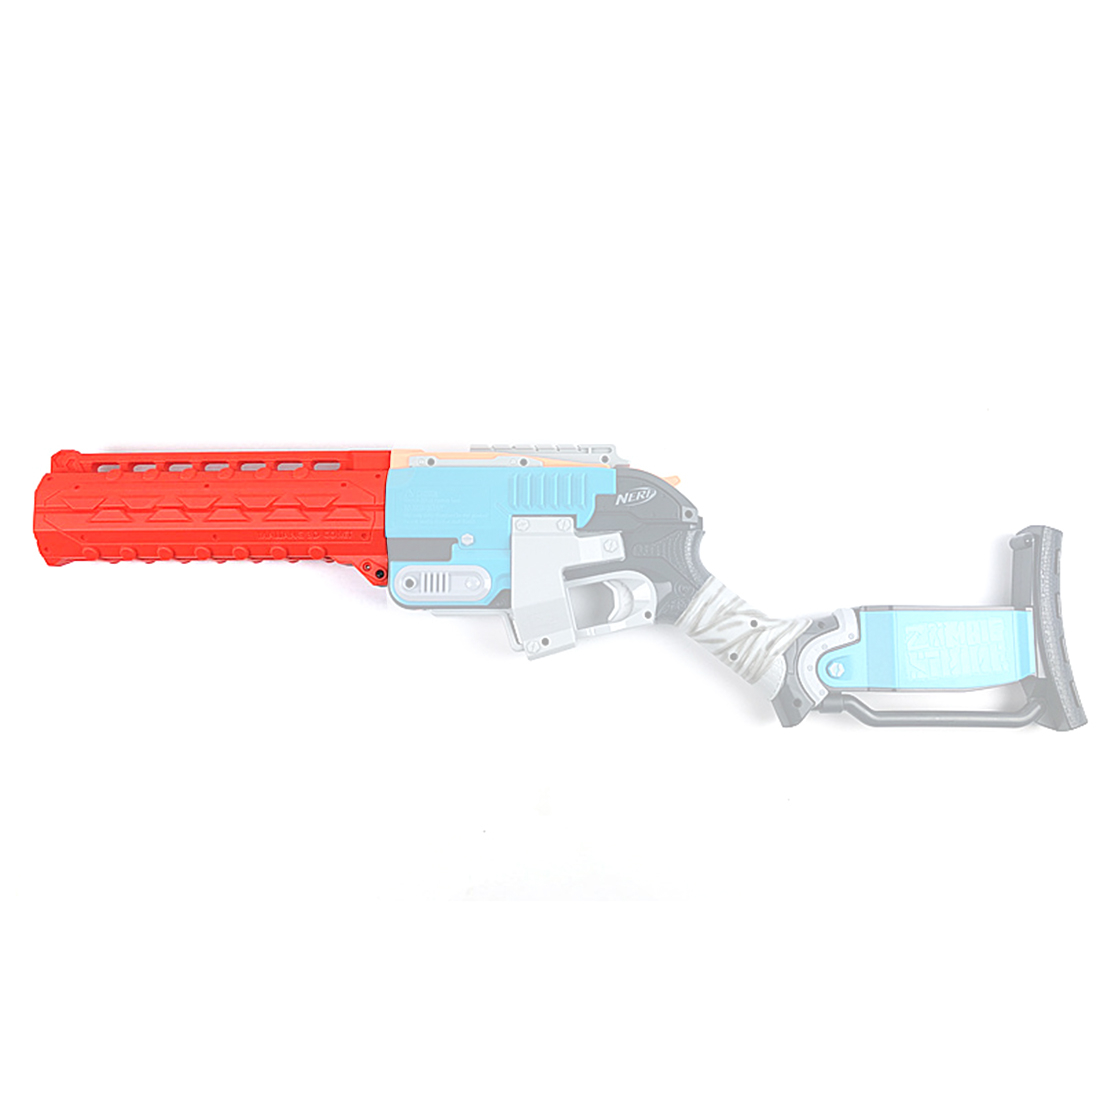 Surwish Tactical 3D Printing Comet Single Darts Barrel for Nerf Zombie Strike Sledgefire Blaster Set - Orange maliang appearance modification 3d printing front tube a 3 0 decoration part for nerf zombie strike doublestrike blaster